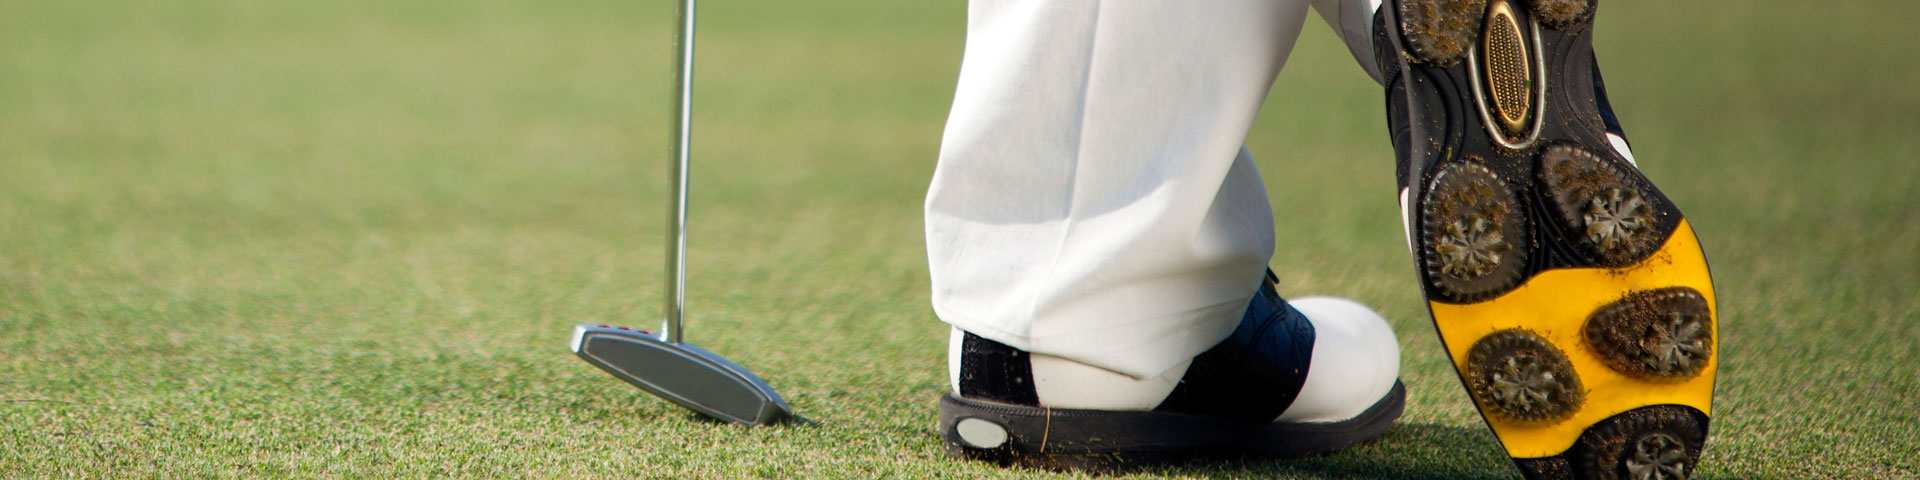 View of a golfer's shoes